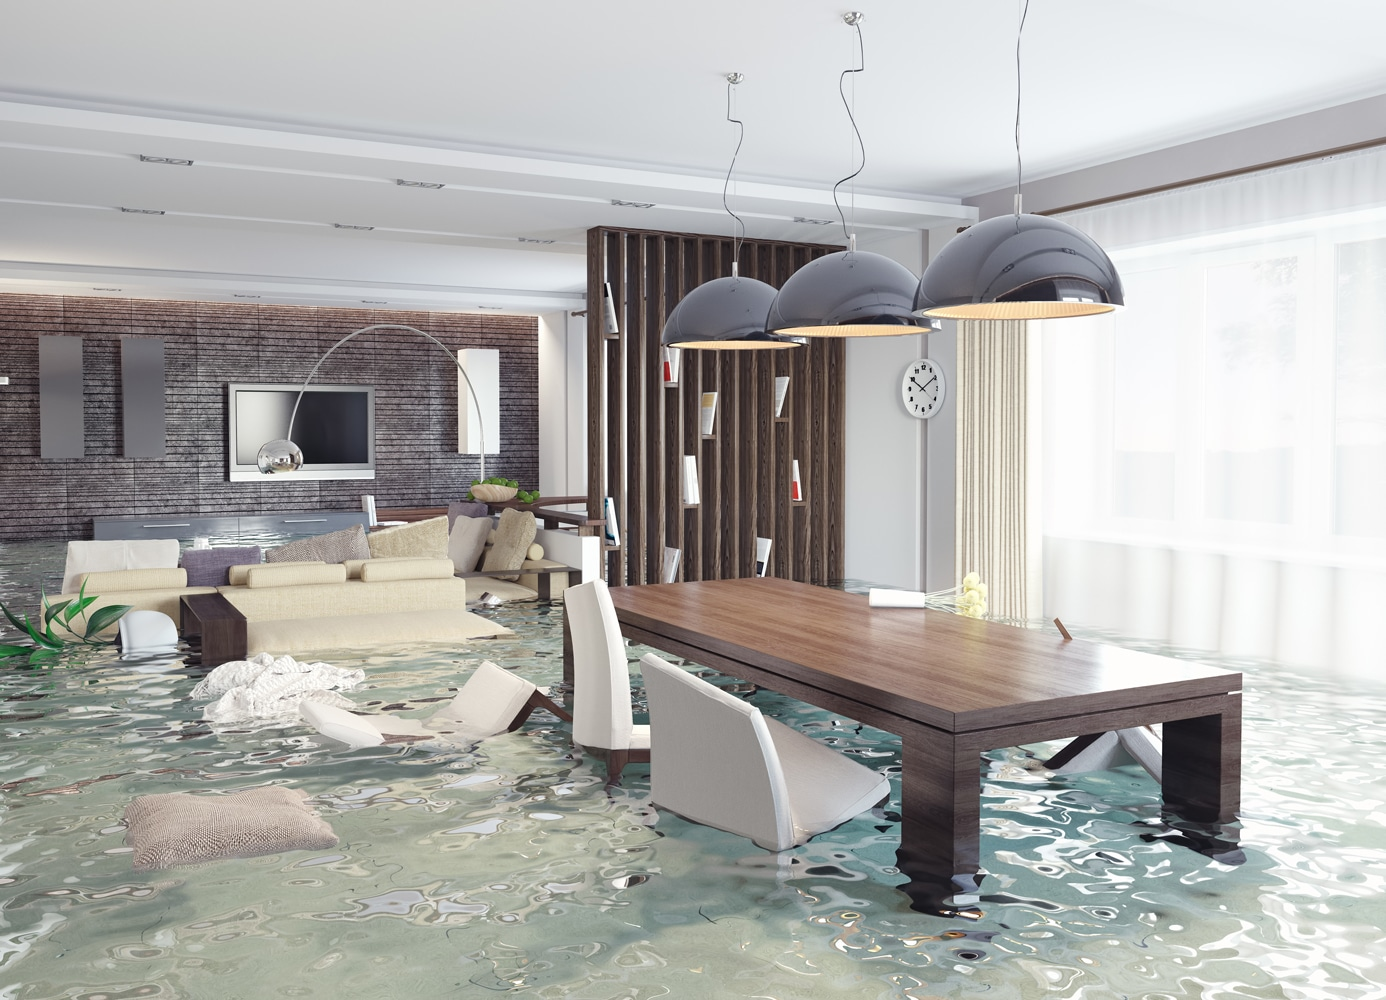 water damage company in gainesville